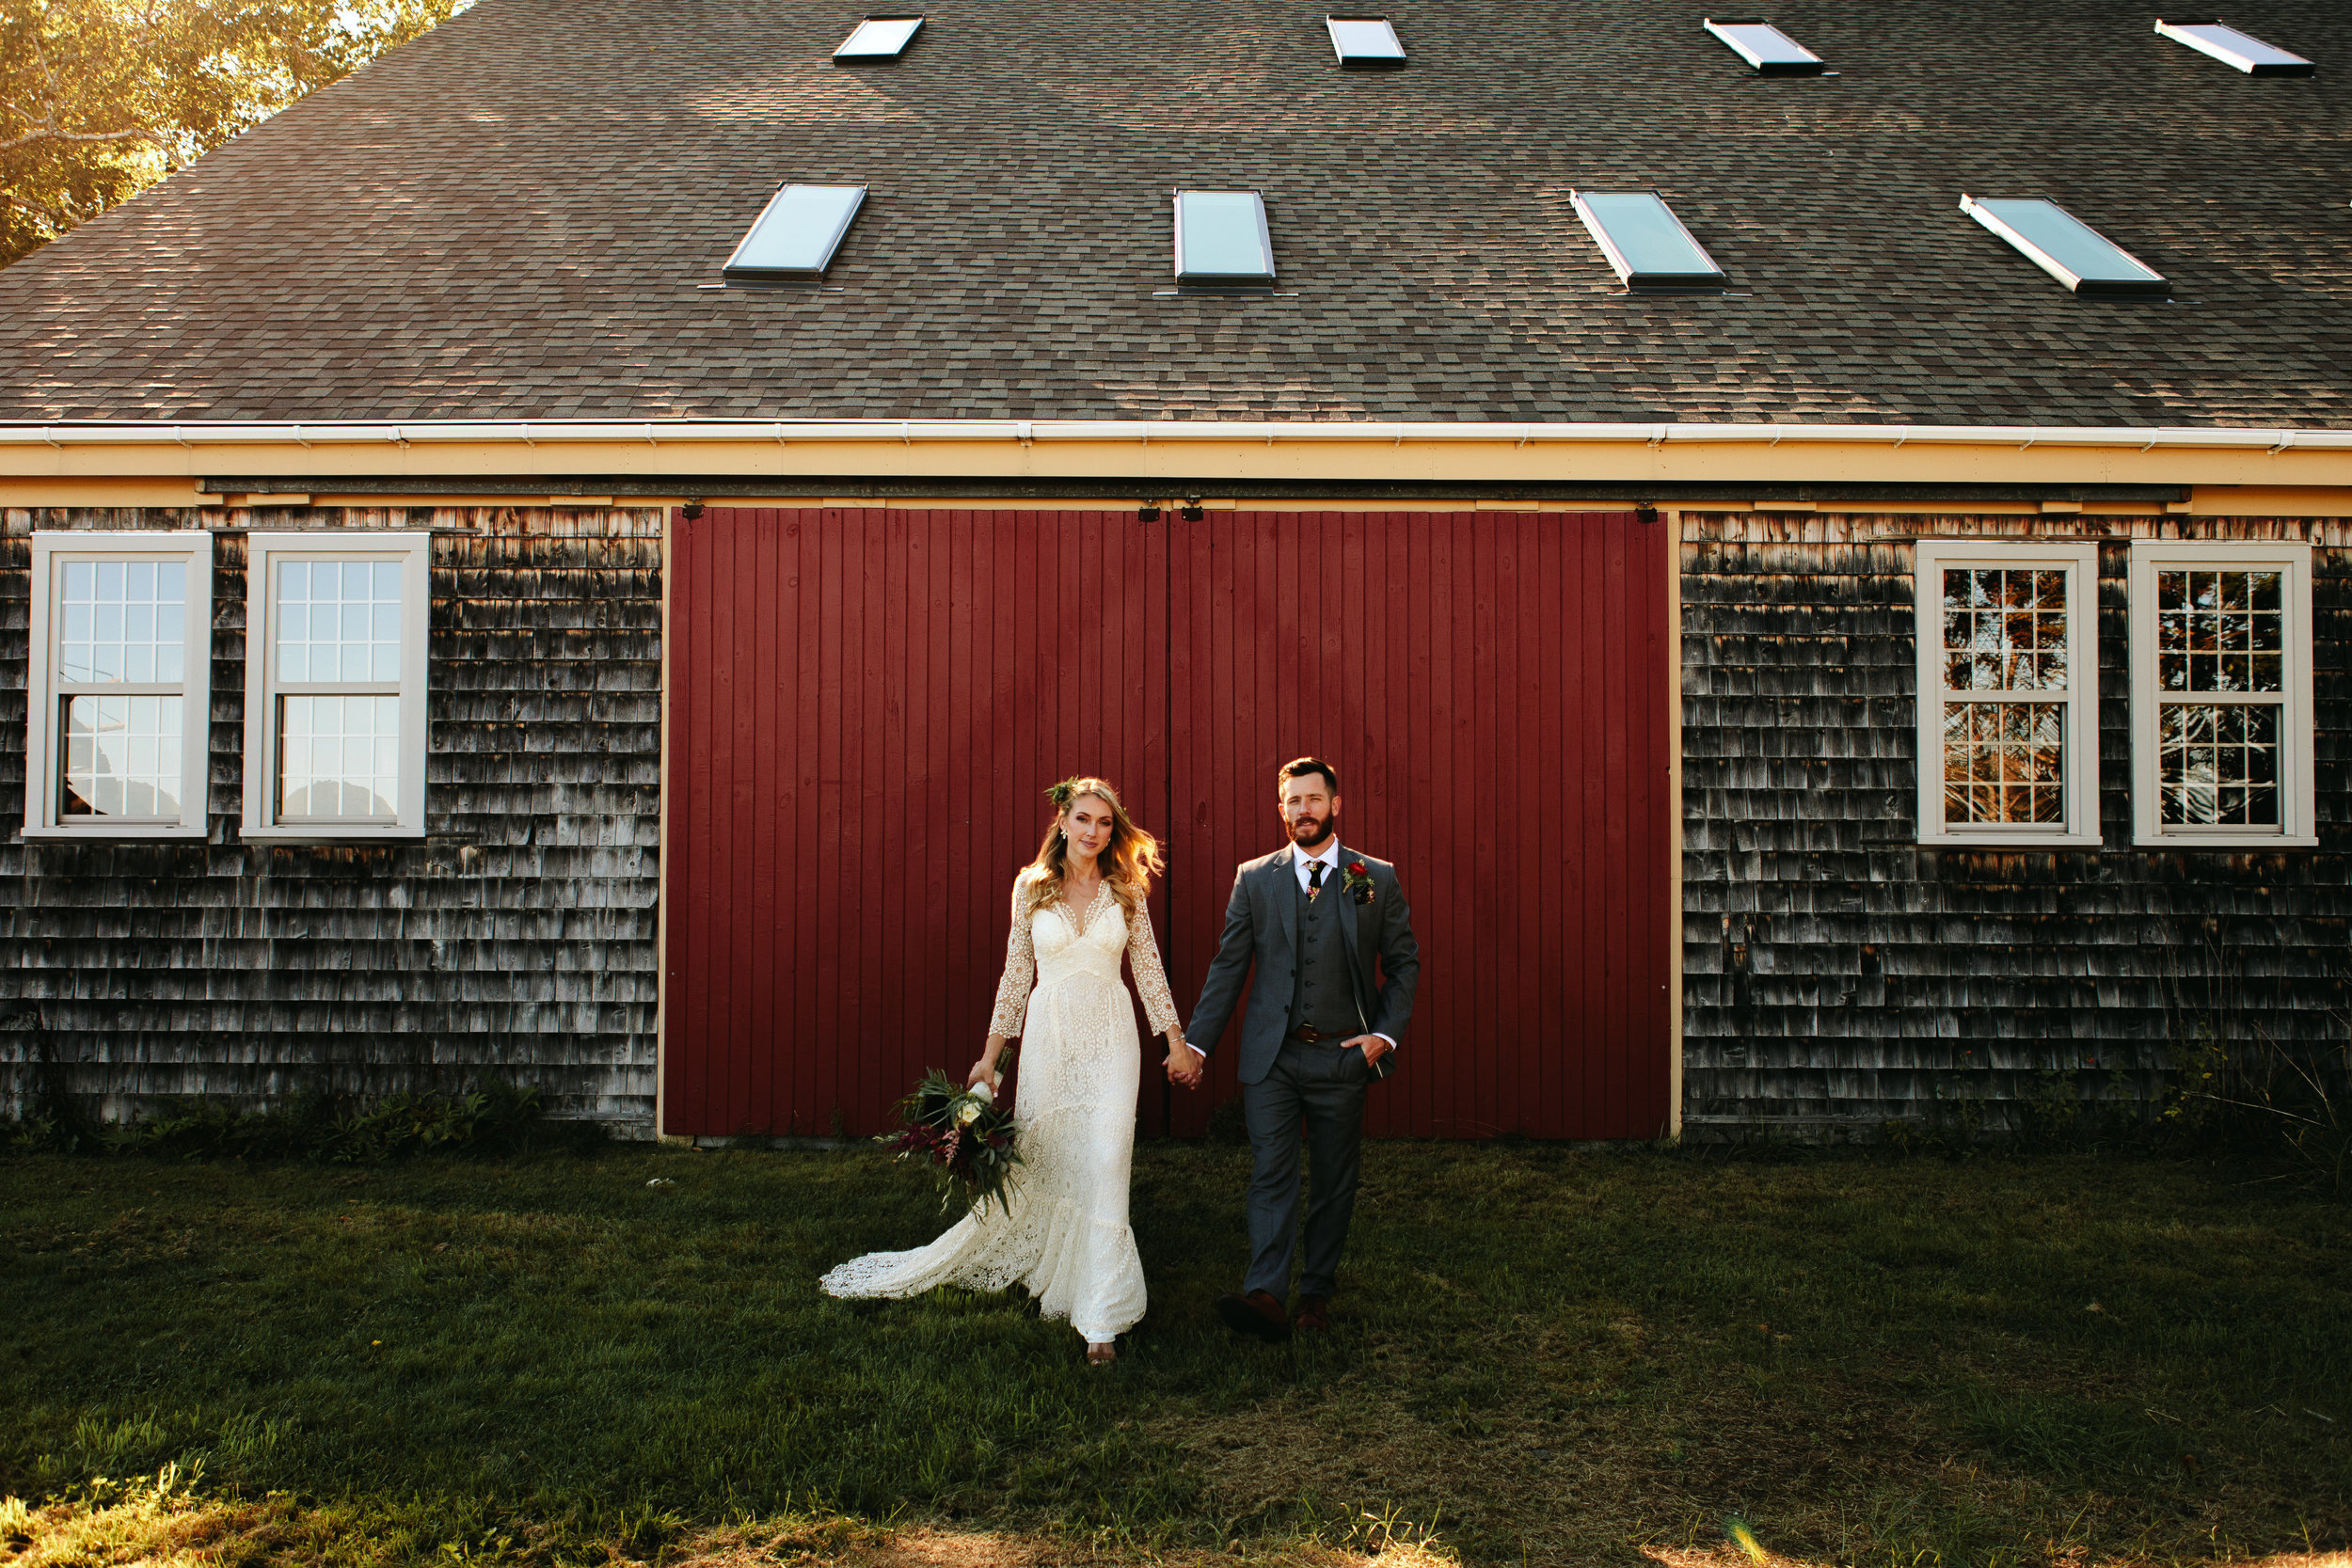 MAINE-MARITIME-MUSEUM-WEDDING-PORTRAITS-10-2.jpg